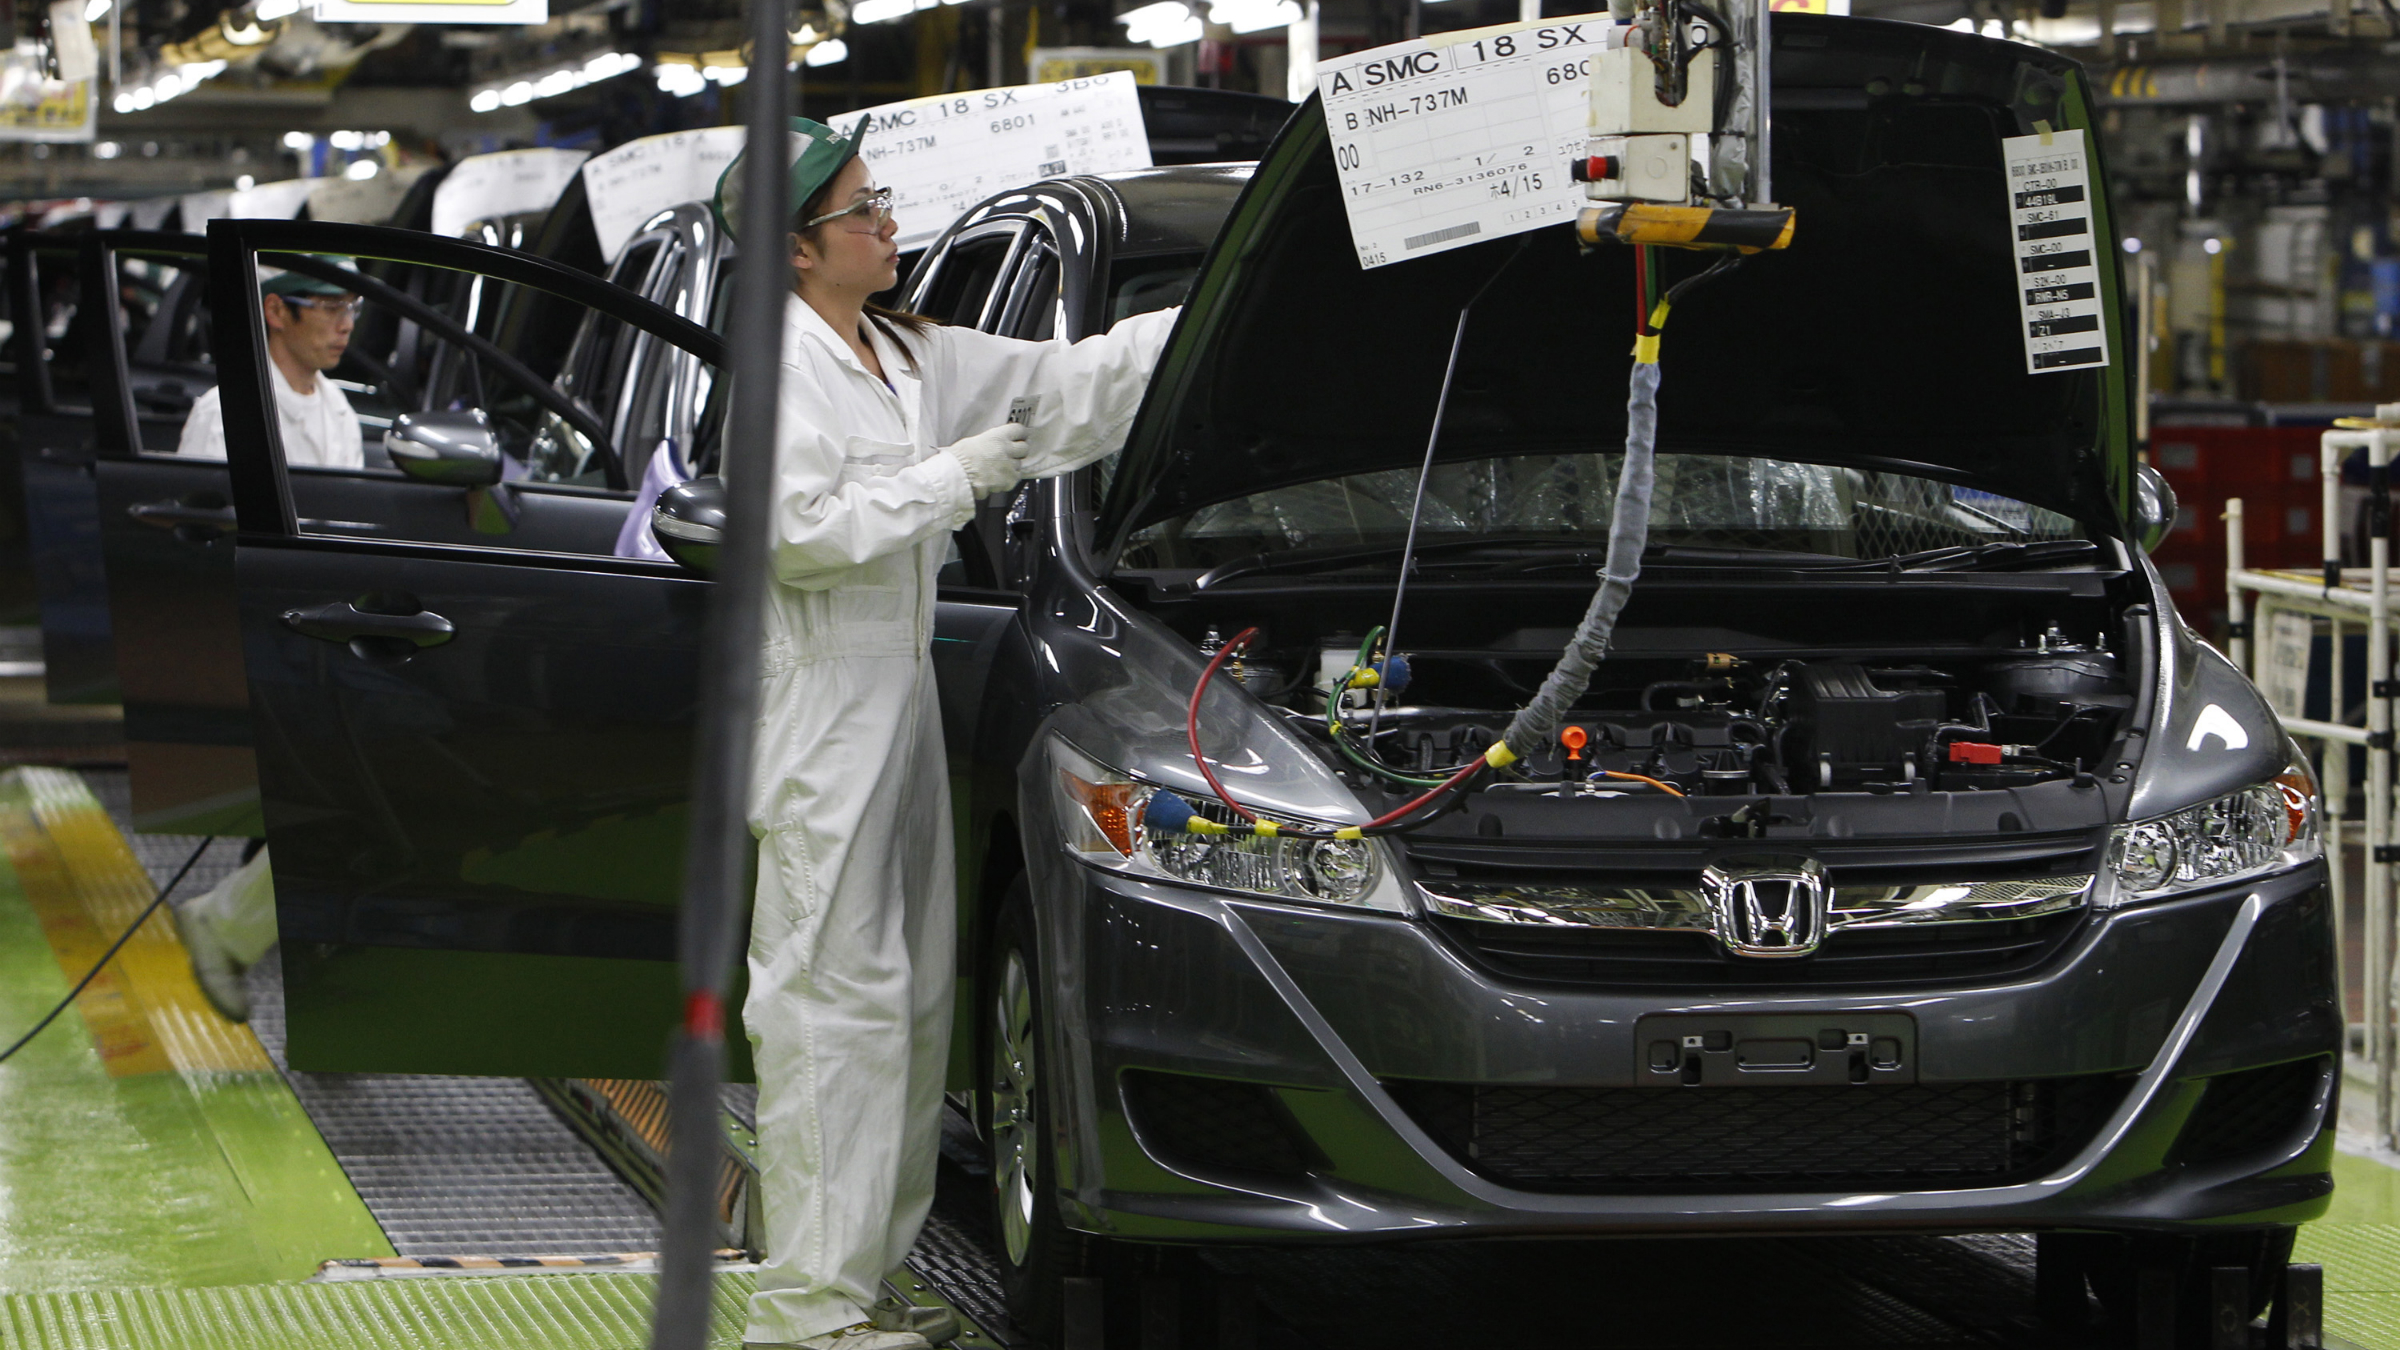 In this April 18, 2011 photo, workers give the final checkup on the cars of Honda Accord Tourer at Honda Motor Co.'s Saitama Factory in Sayama, north of Tokyo, Monday, April 18, 2011 as the Japanese automaker resumed limited production on April 11 at the factory following the March 11 earthquake and tsunami. Honda said Thursday, April 28, 2011 its quarterly profit dropped 38.3 percent due to a slump in car production following last month's disasters.